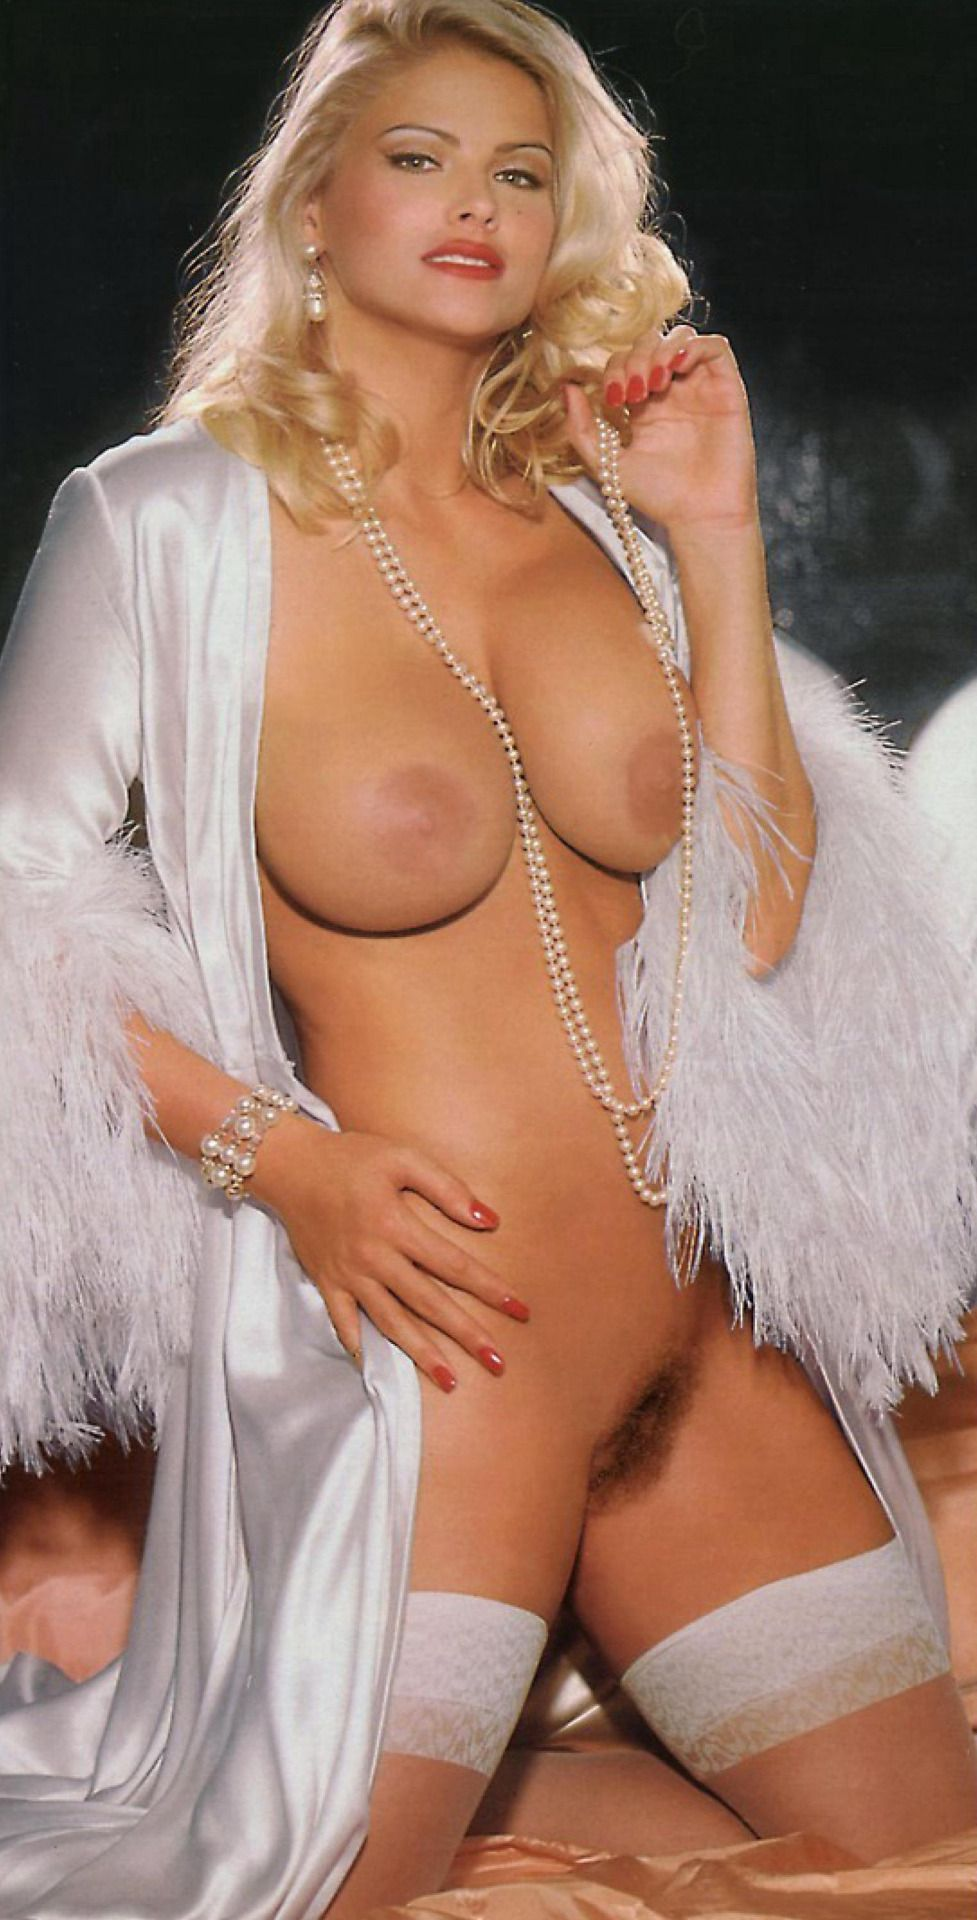 Nude pictures of anna nicole